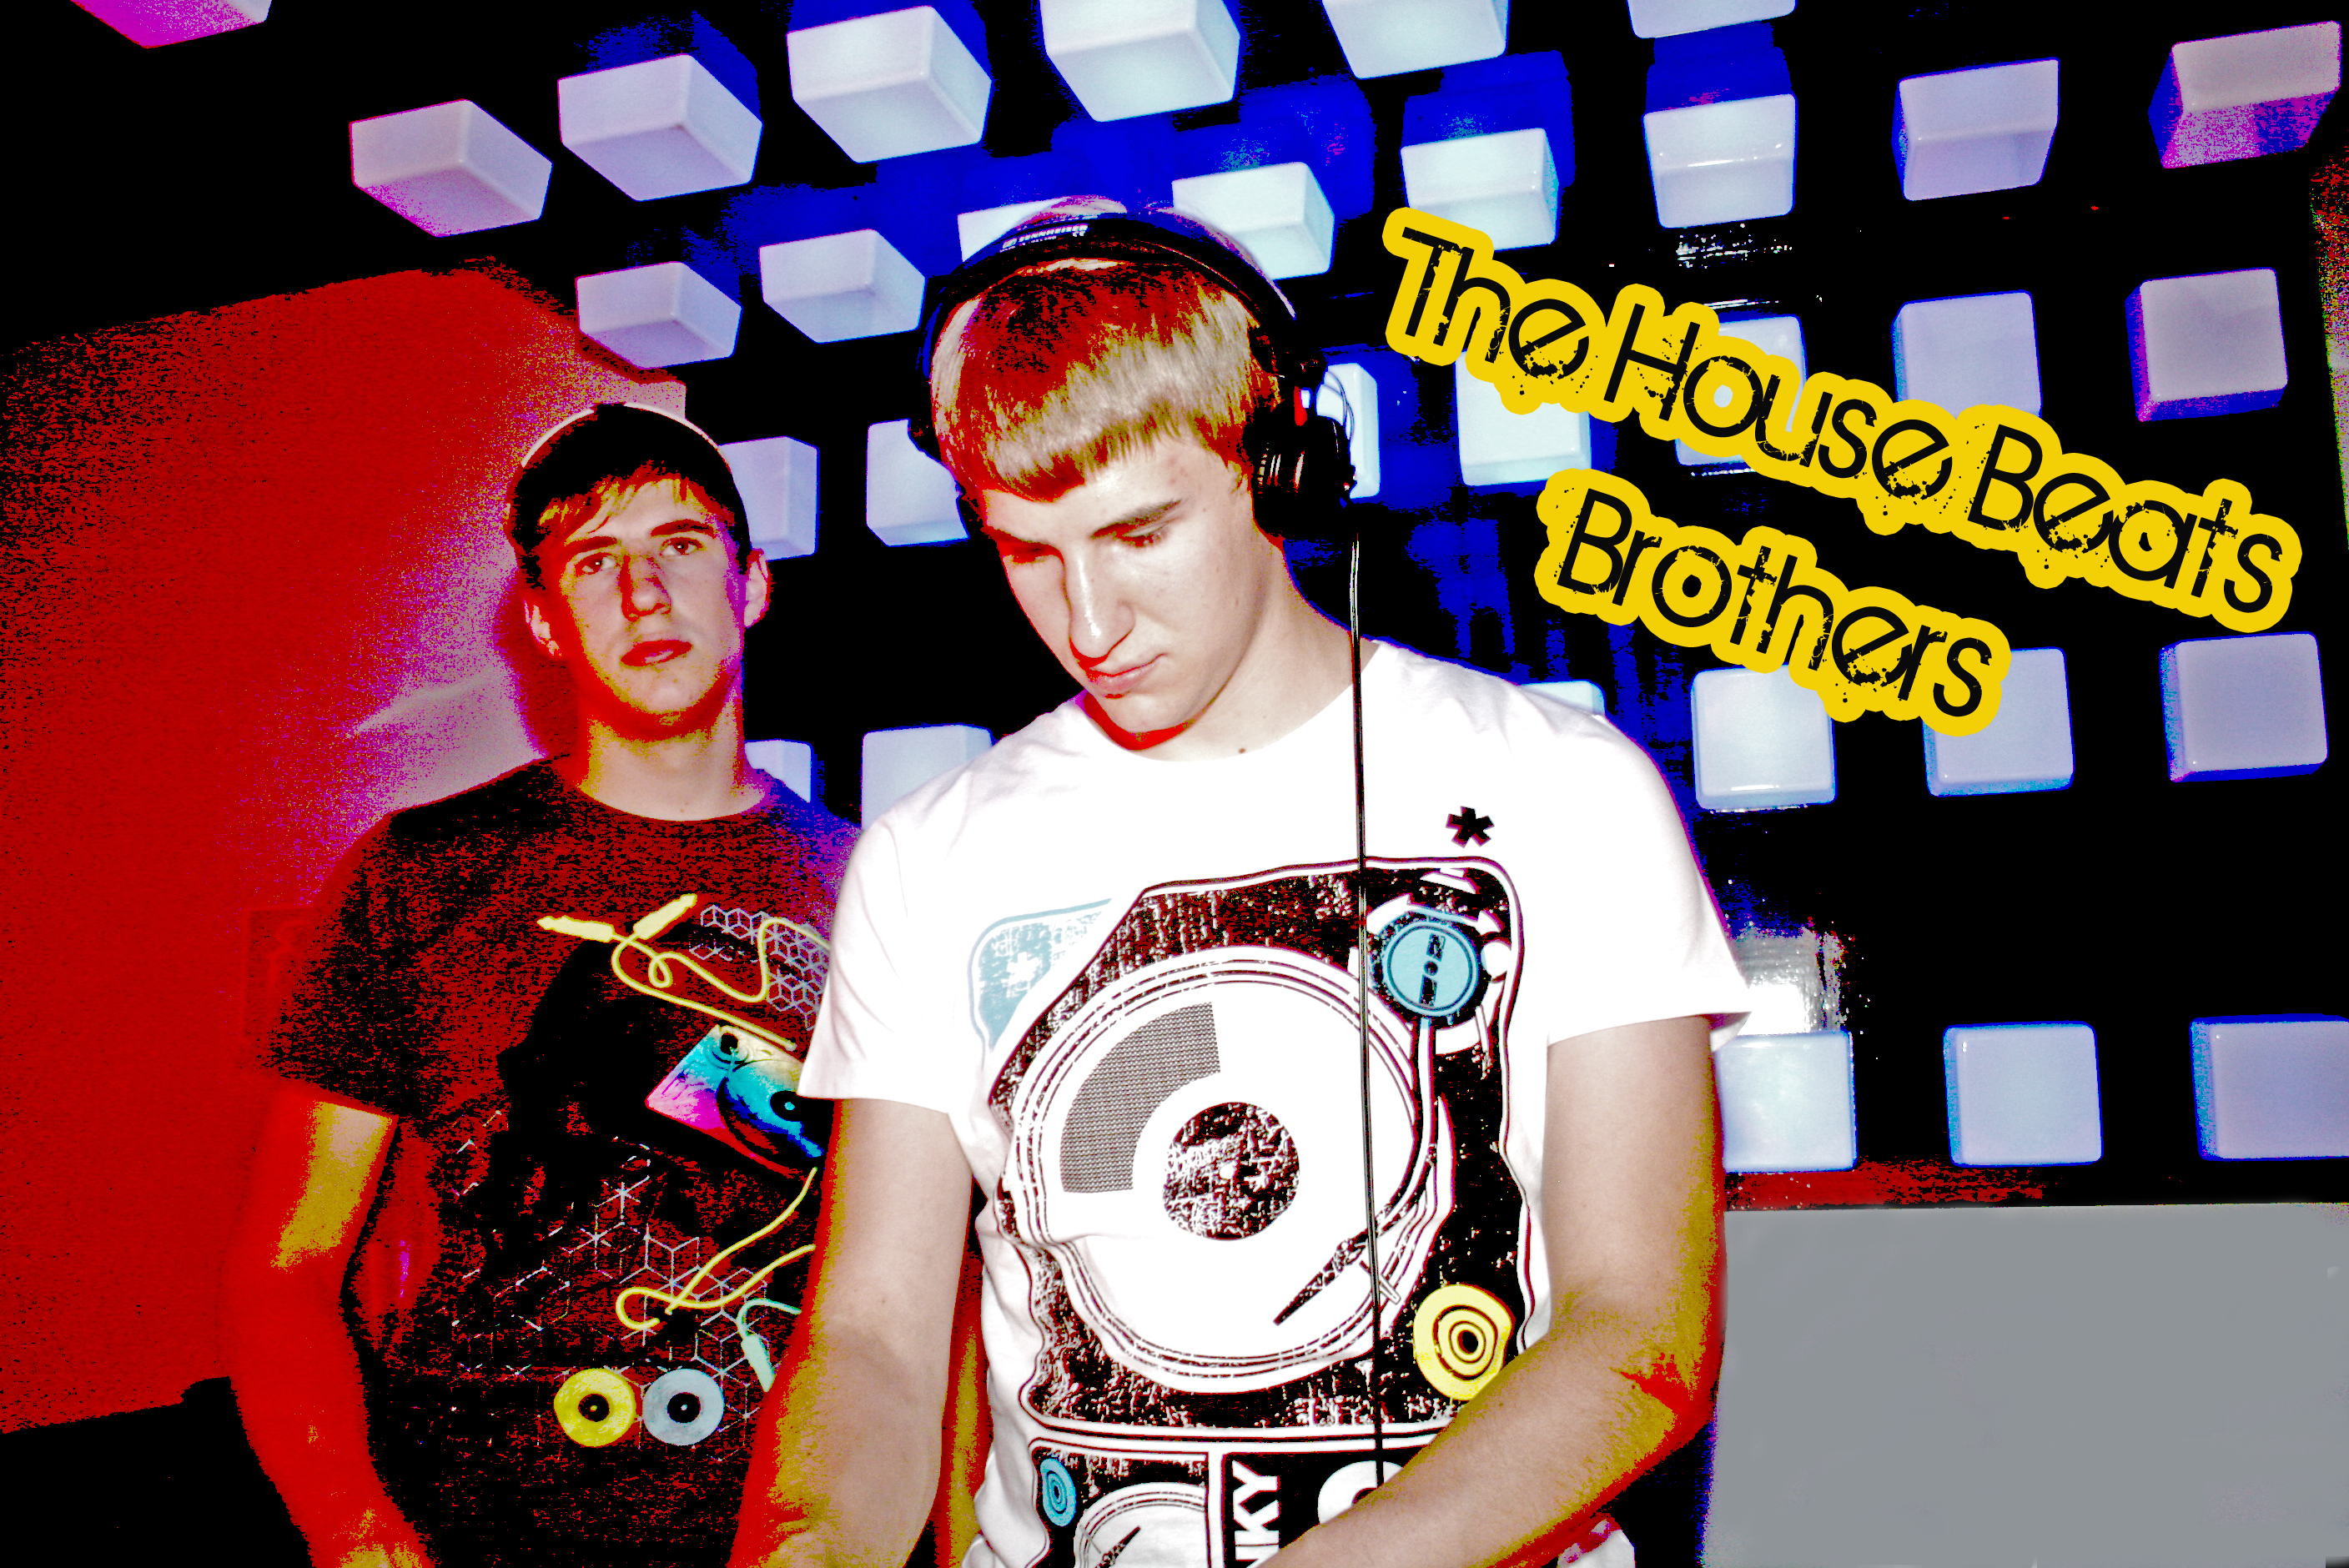 The Housebeats Brothers